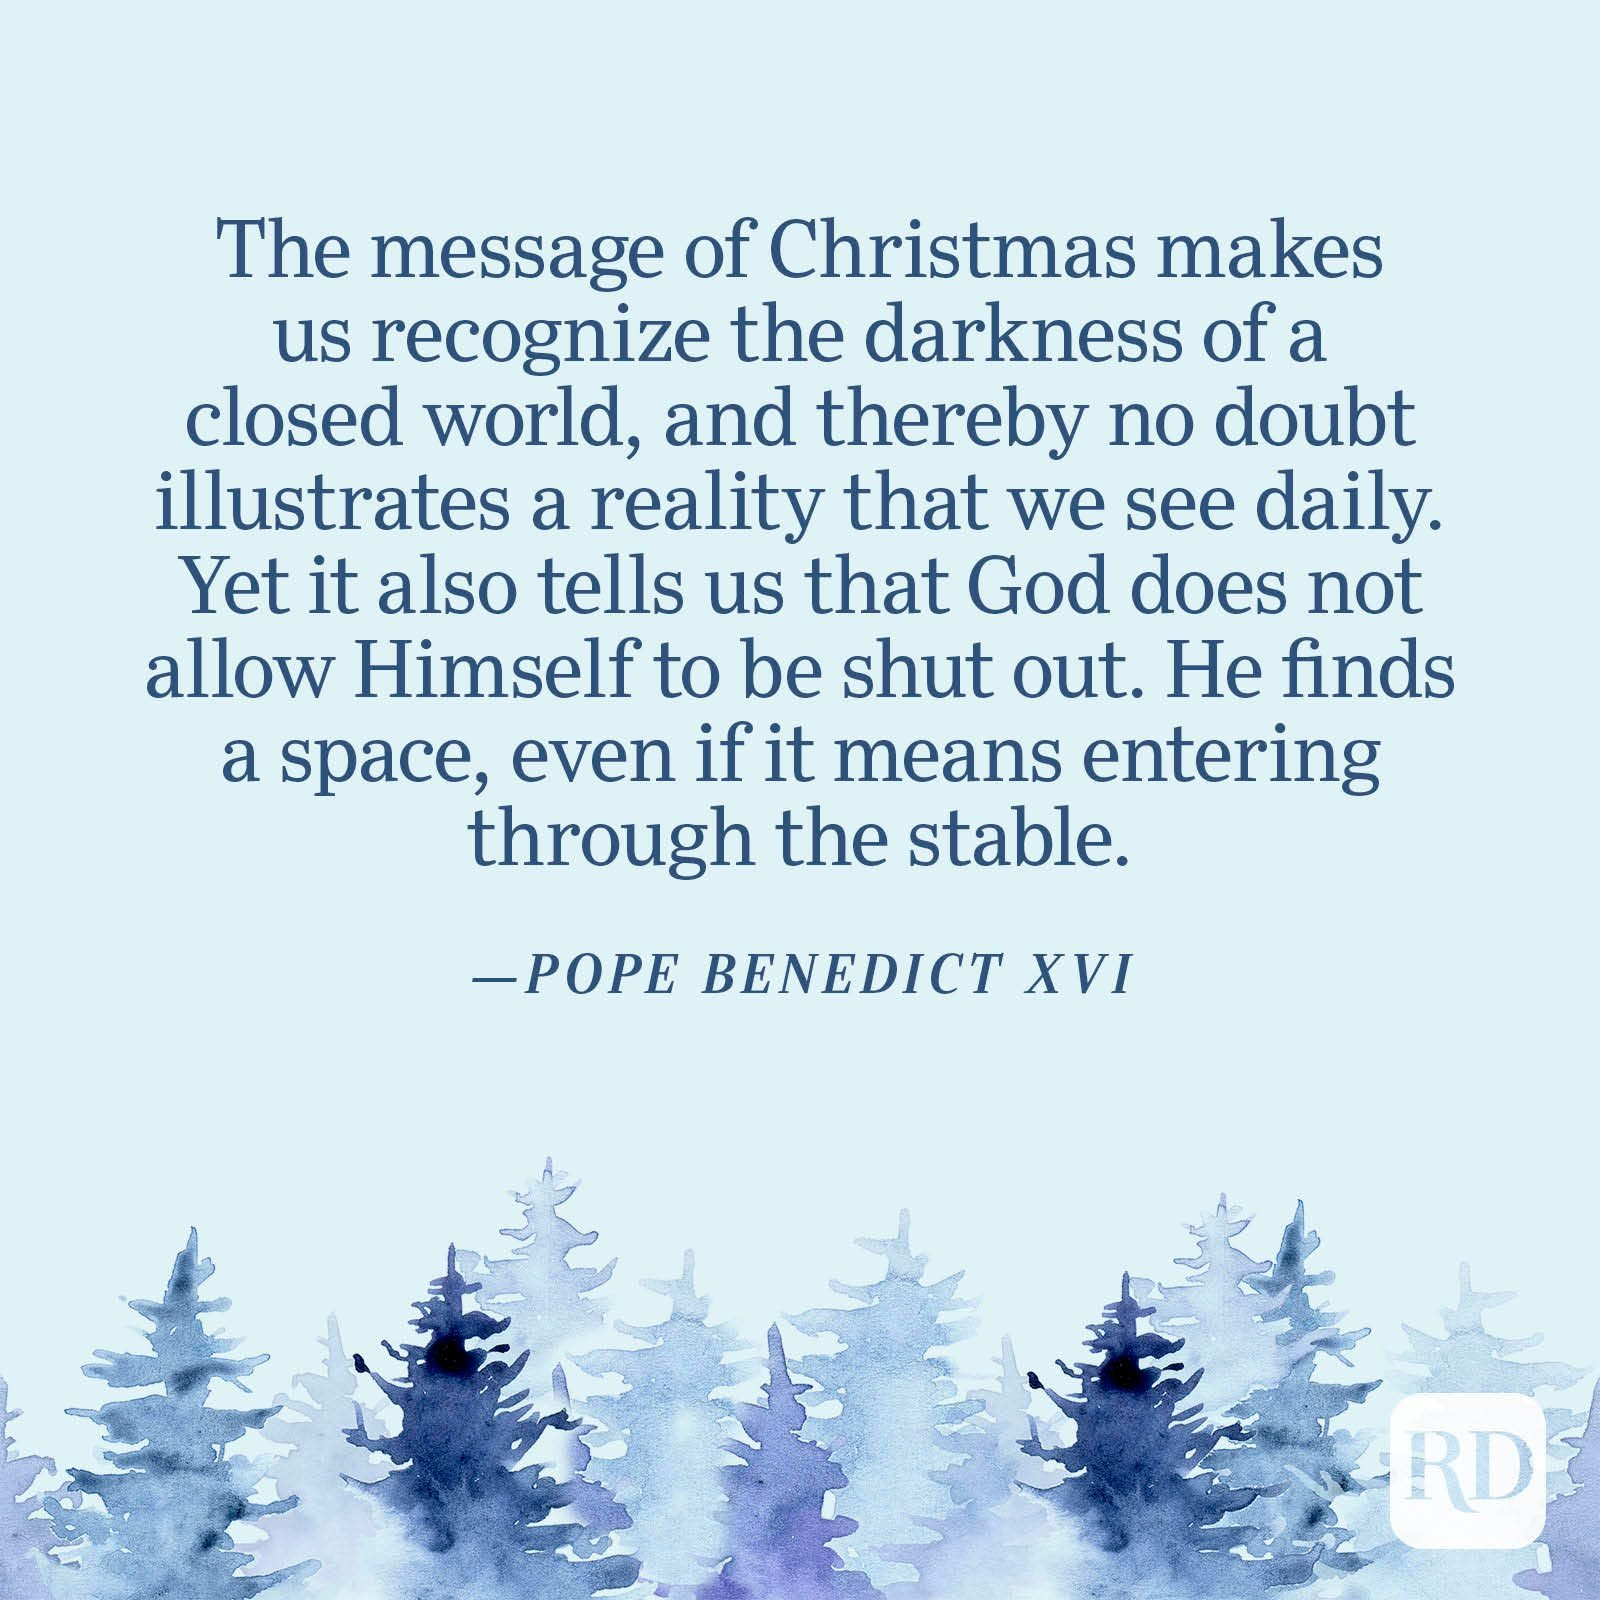 """""""The message of Christmas makes us recognize the darkness of a closed world, and thereby no doubt illustrates a reality that we see daily. Yet it also tells us that God does not allow Himself to be shut out. He finds a space, even if it means entering through the stable."""" —Pope Benedict XVI"""